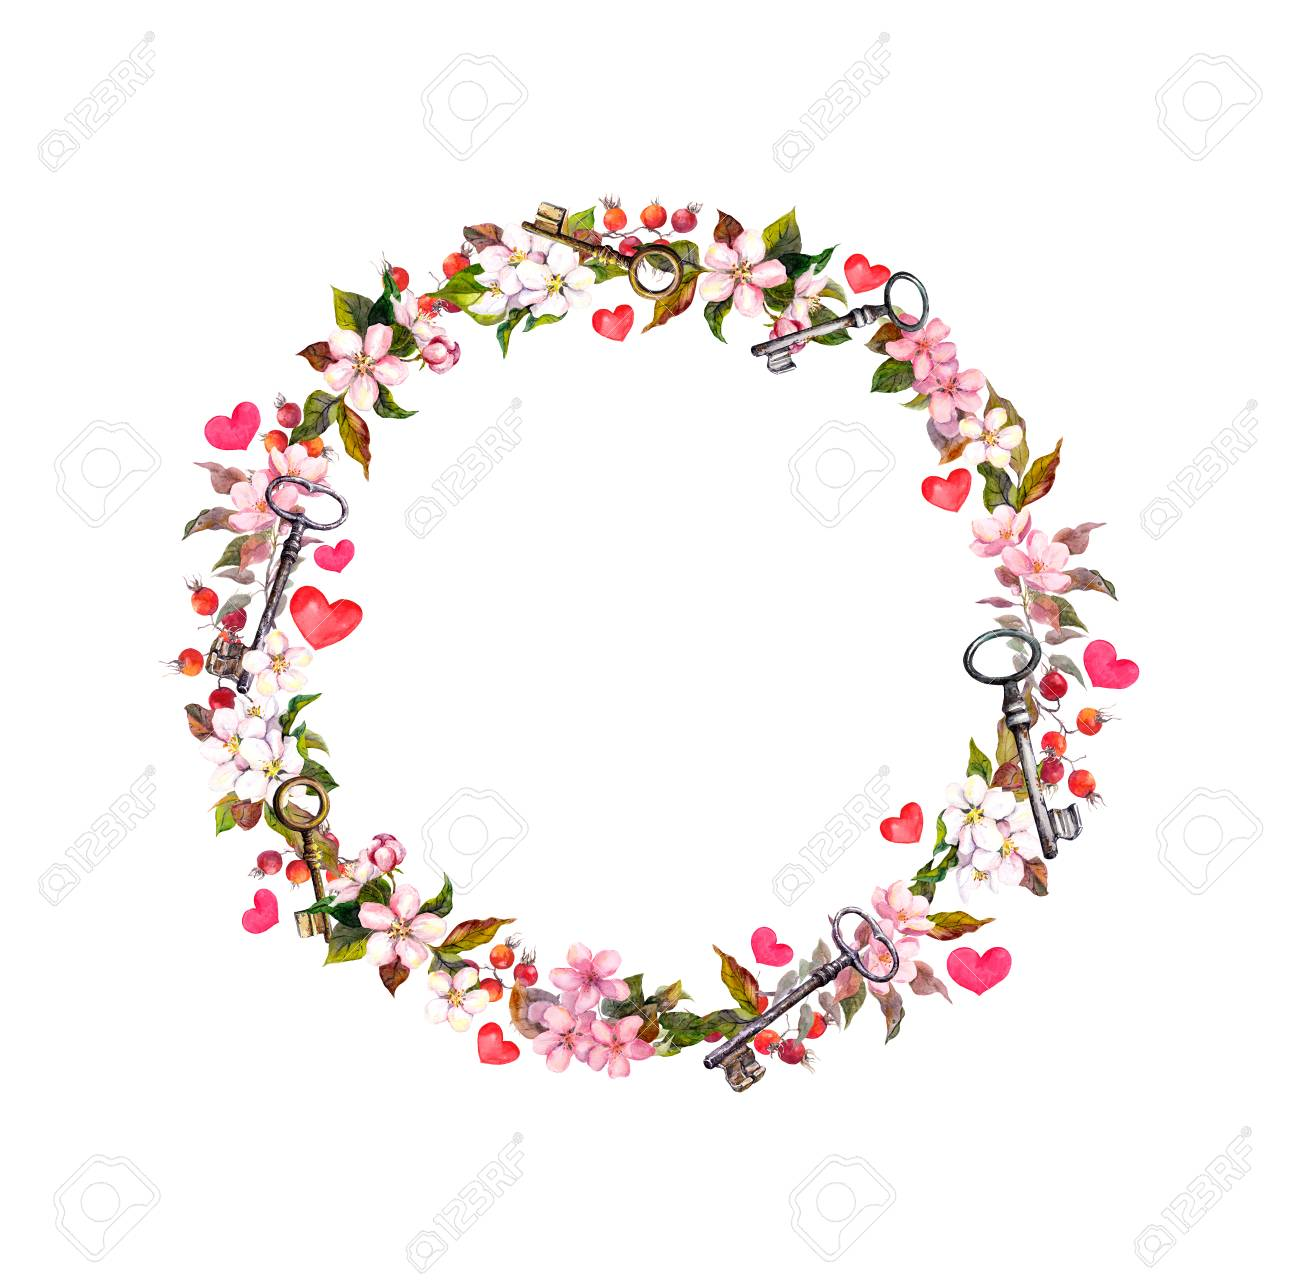 Circle Flower Border - Floral Wreath With Pink Flowers, Hearts, Keys. Watercolor Circle ...